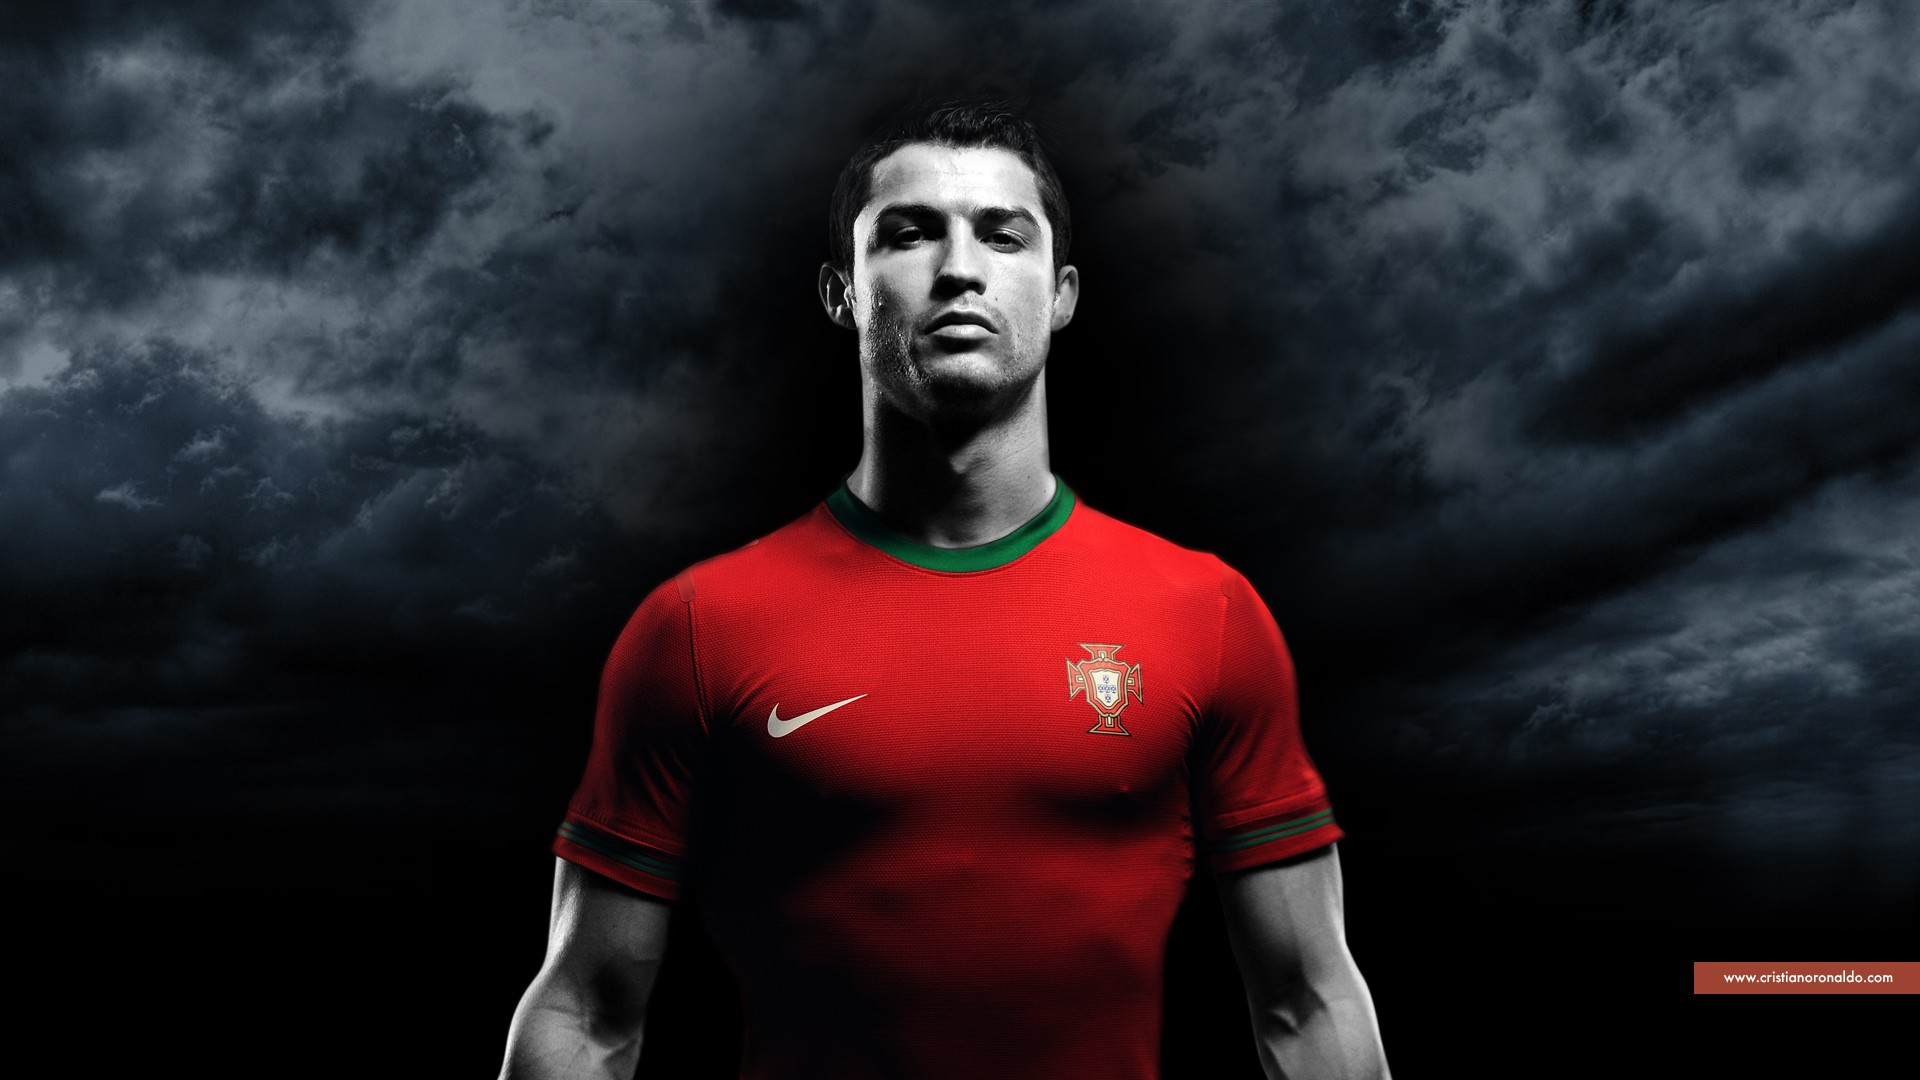 Wallpapers CR7.